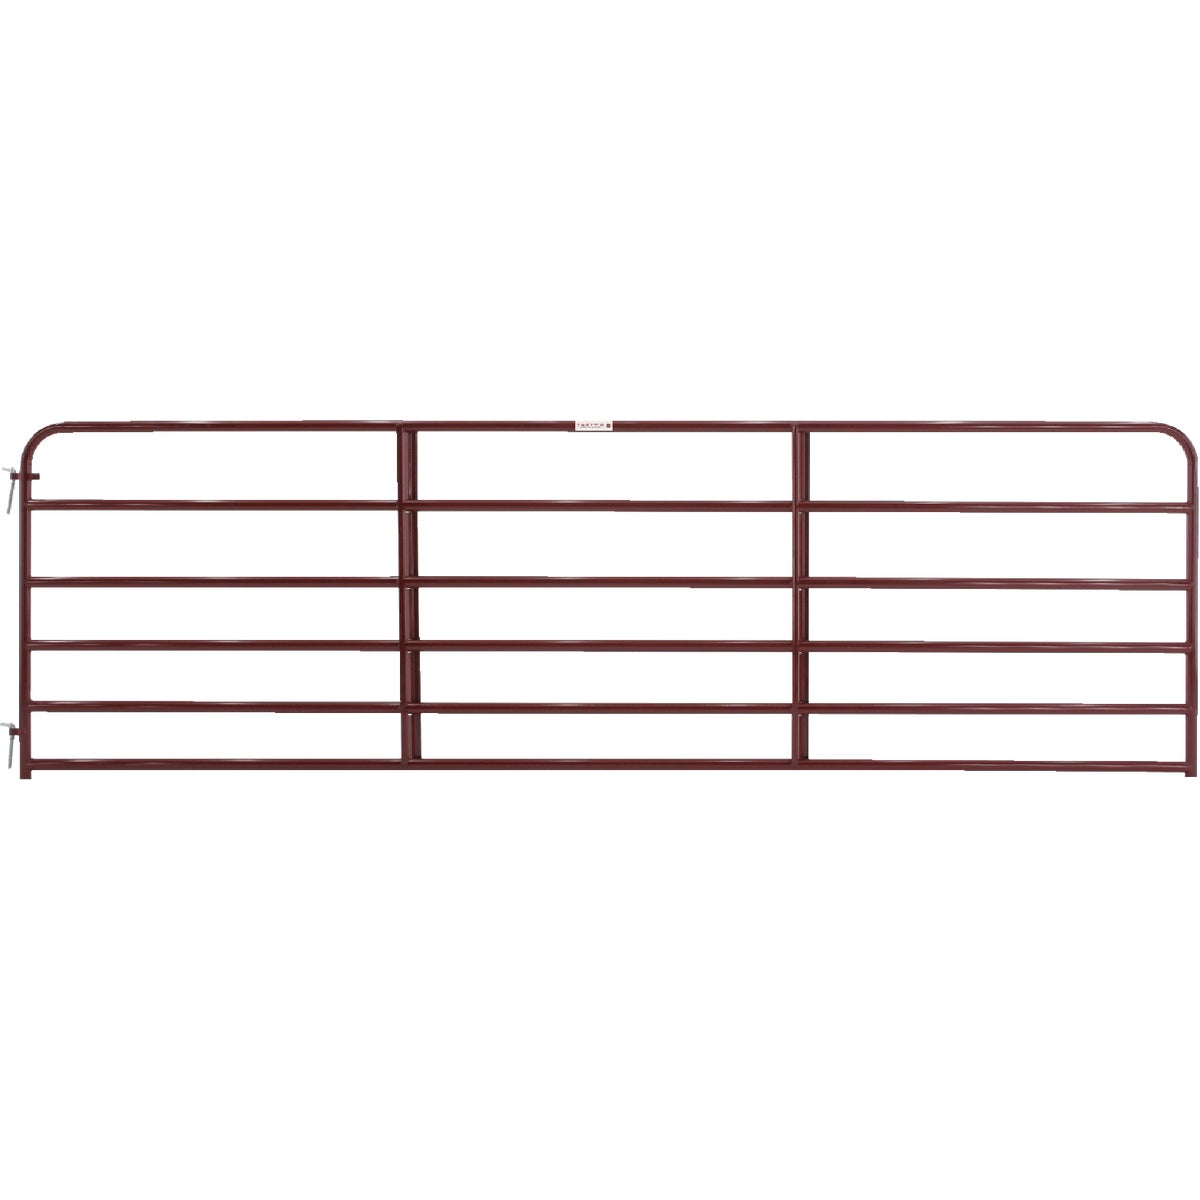 14' 6BAR RED ECONO GATE - 6ER14 by Tarter Llc